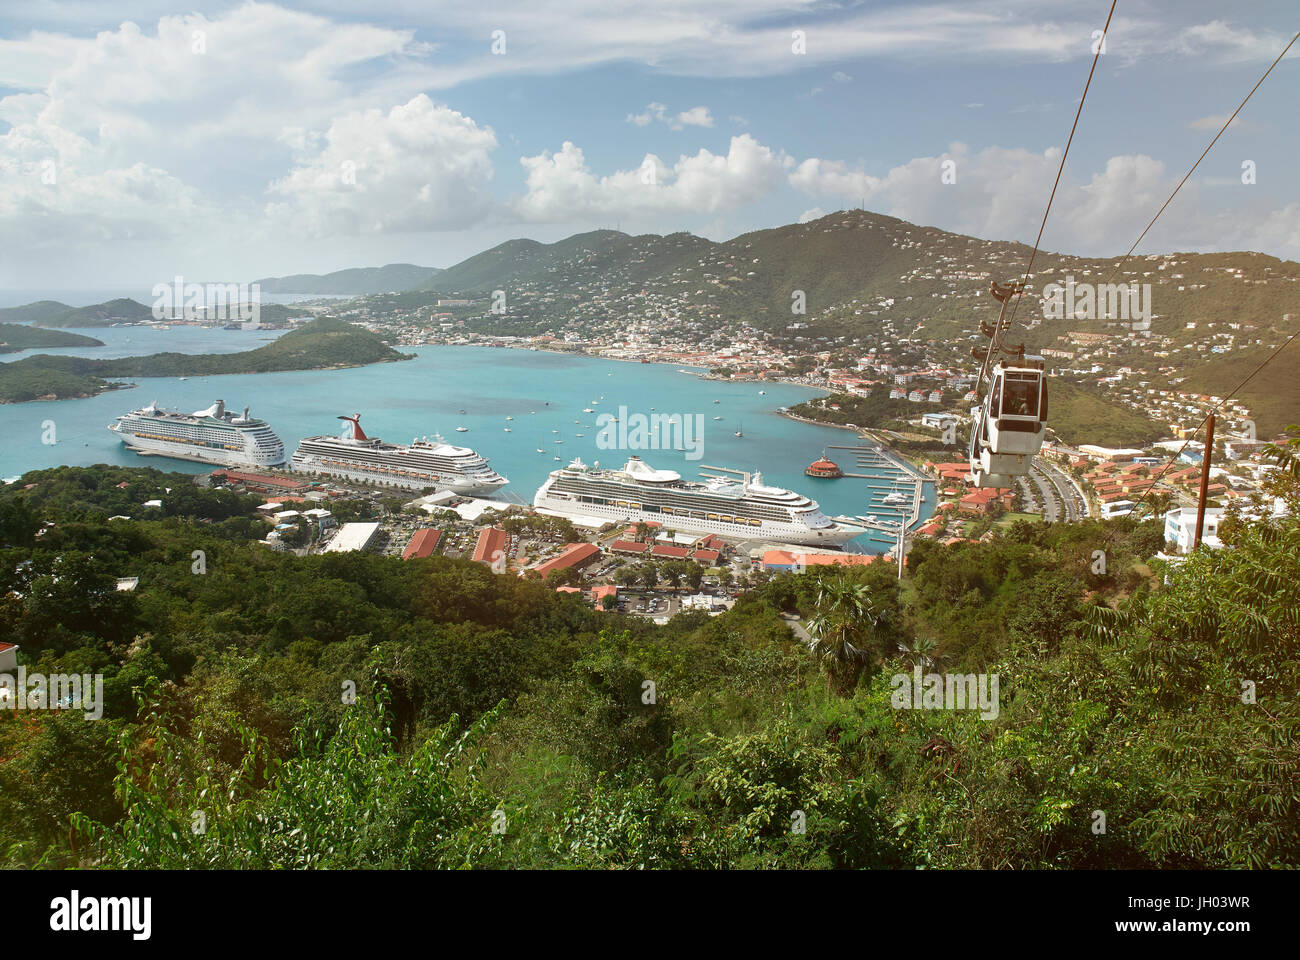 Virgin st thomas island bay panorama. Vacation in tropical island theme Stock Photo